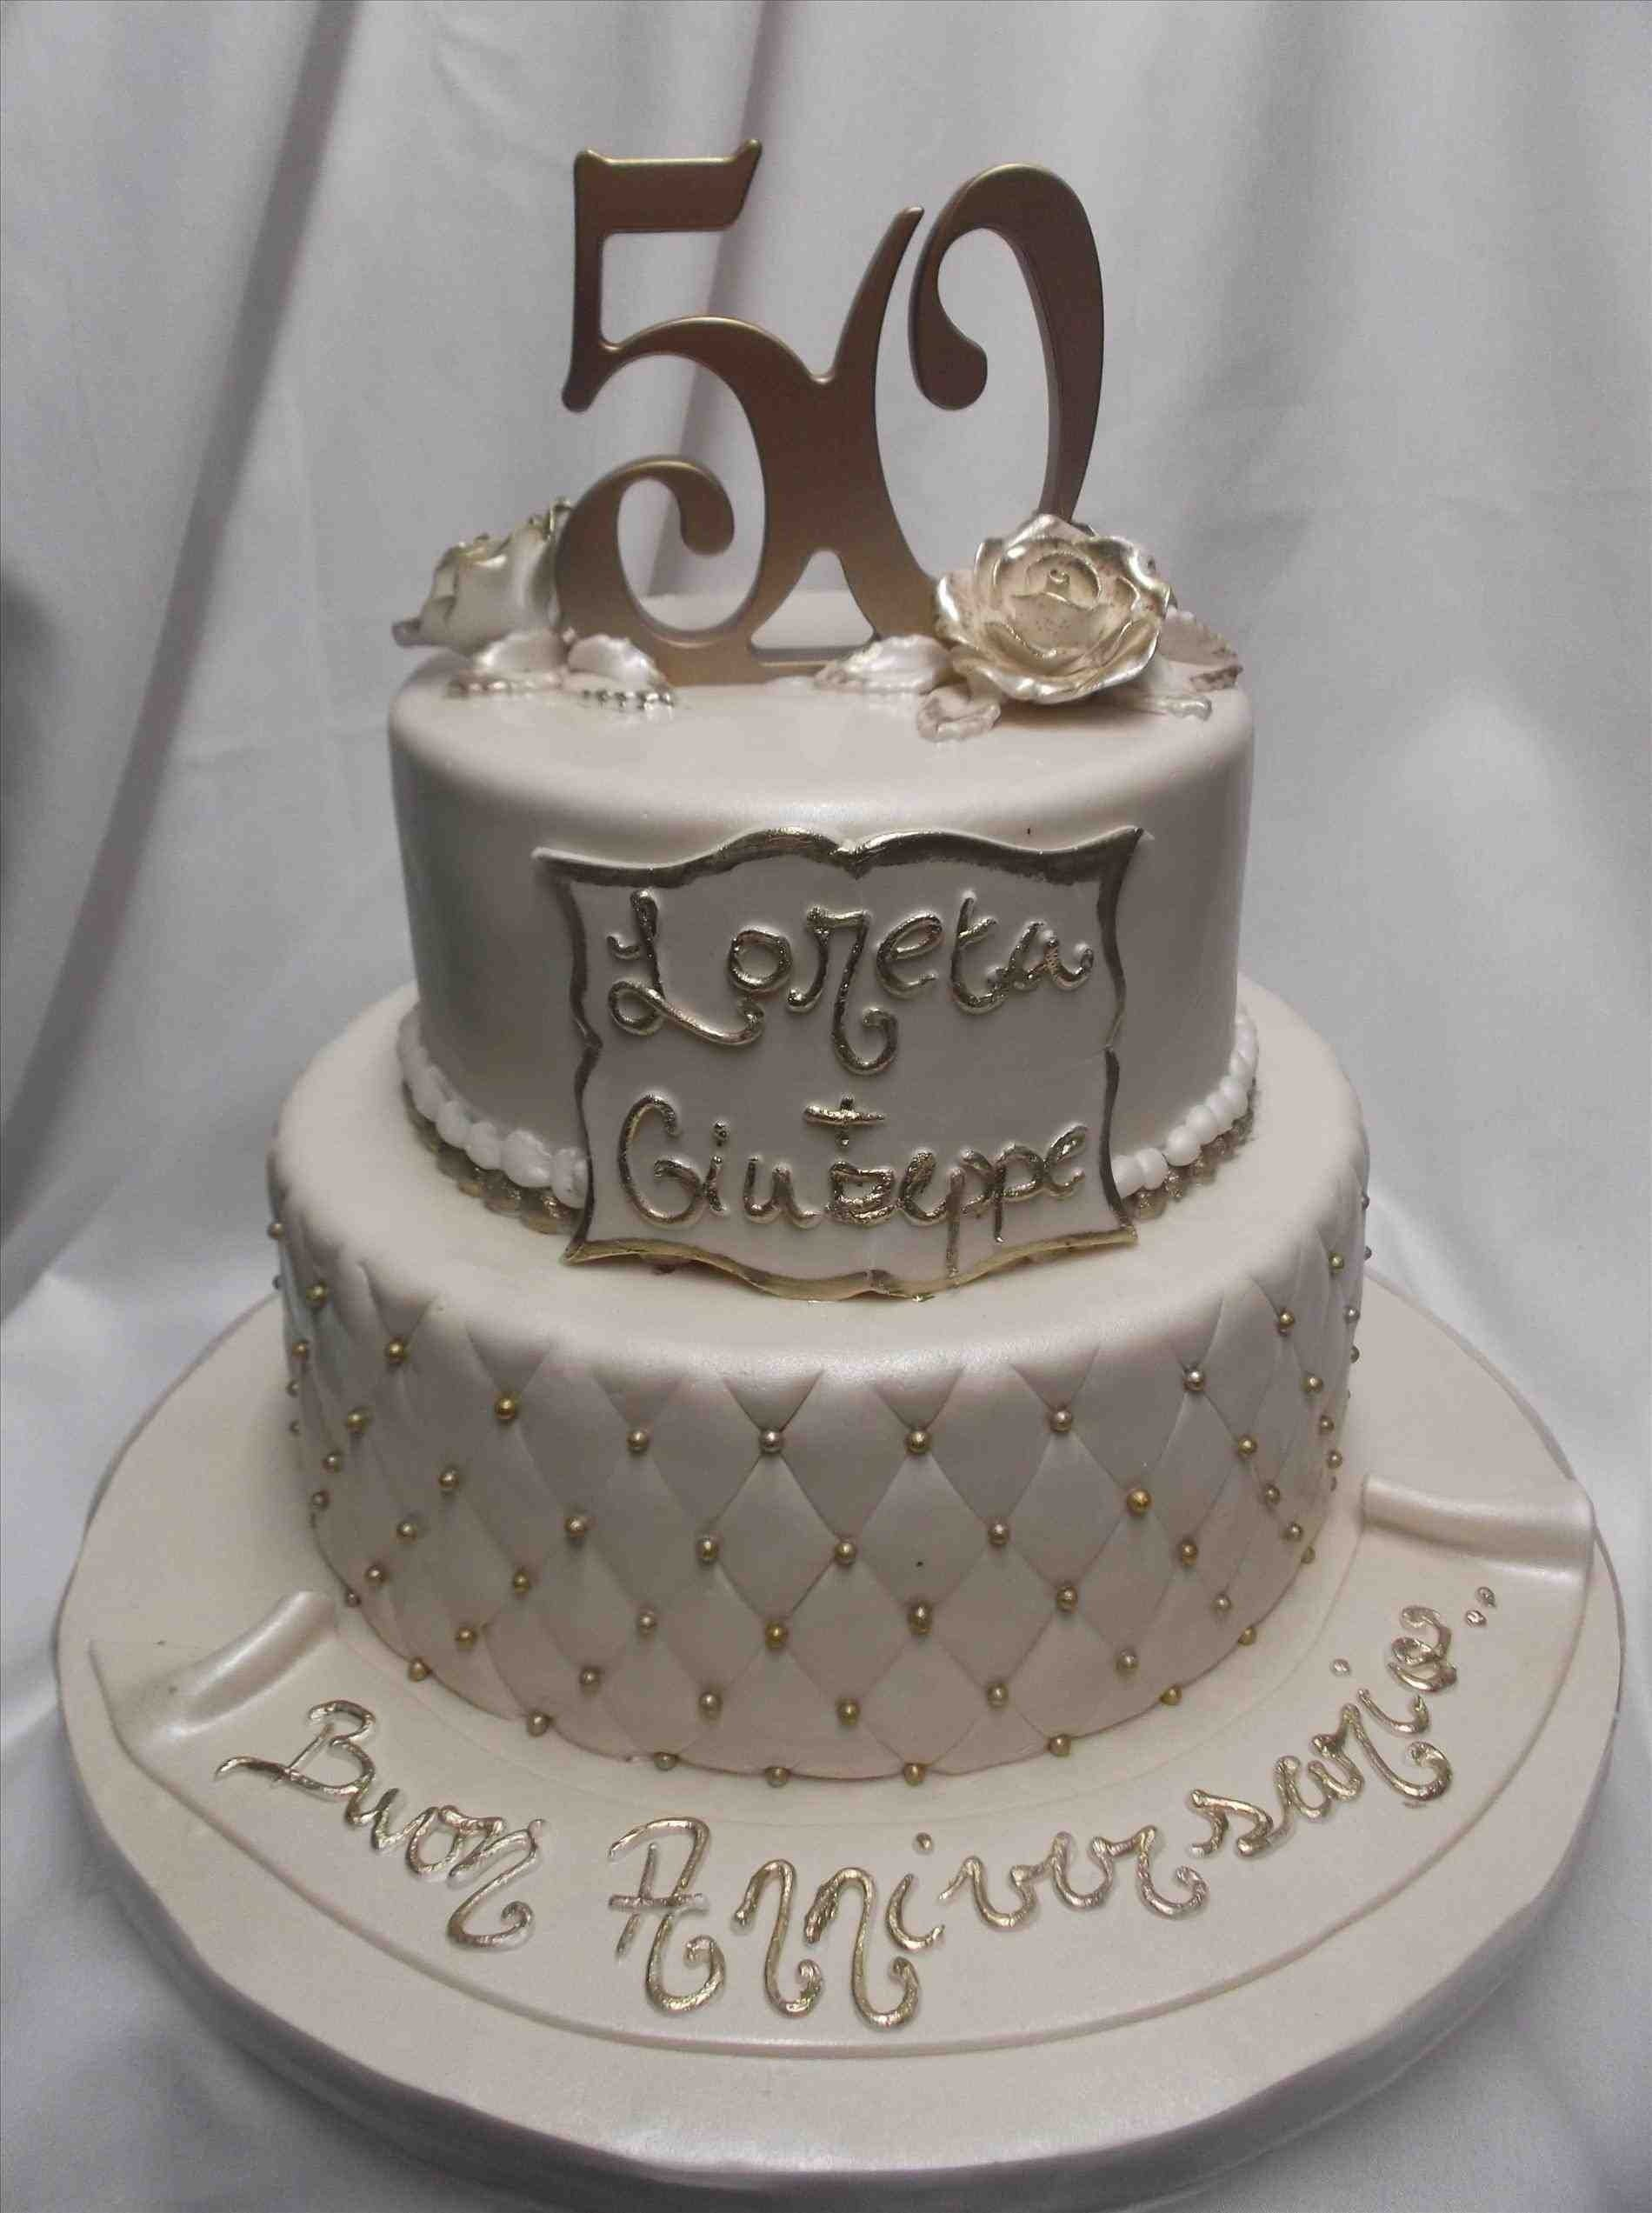 10 Awesome 50Th Birthday Cake Decorating Ideas 50th birthday cake decorating ideas 4birthday 2020